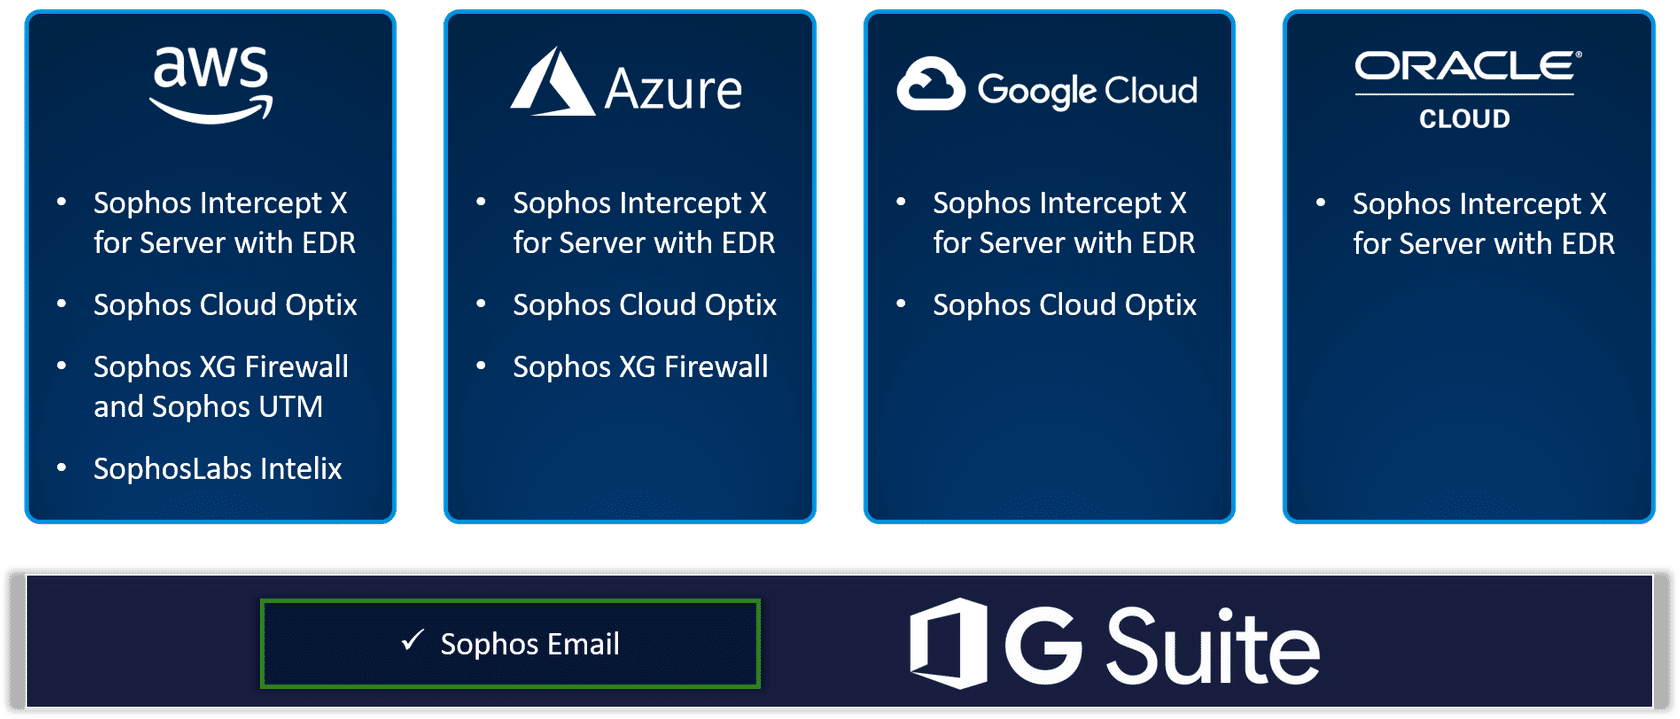 For SaaS environments we offer Sophos Email through Sophos Central for both G Suite and O365 customers looking for additional email security.